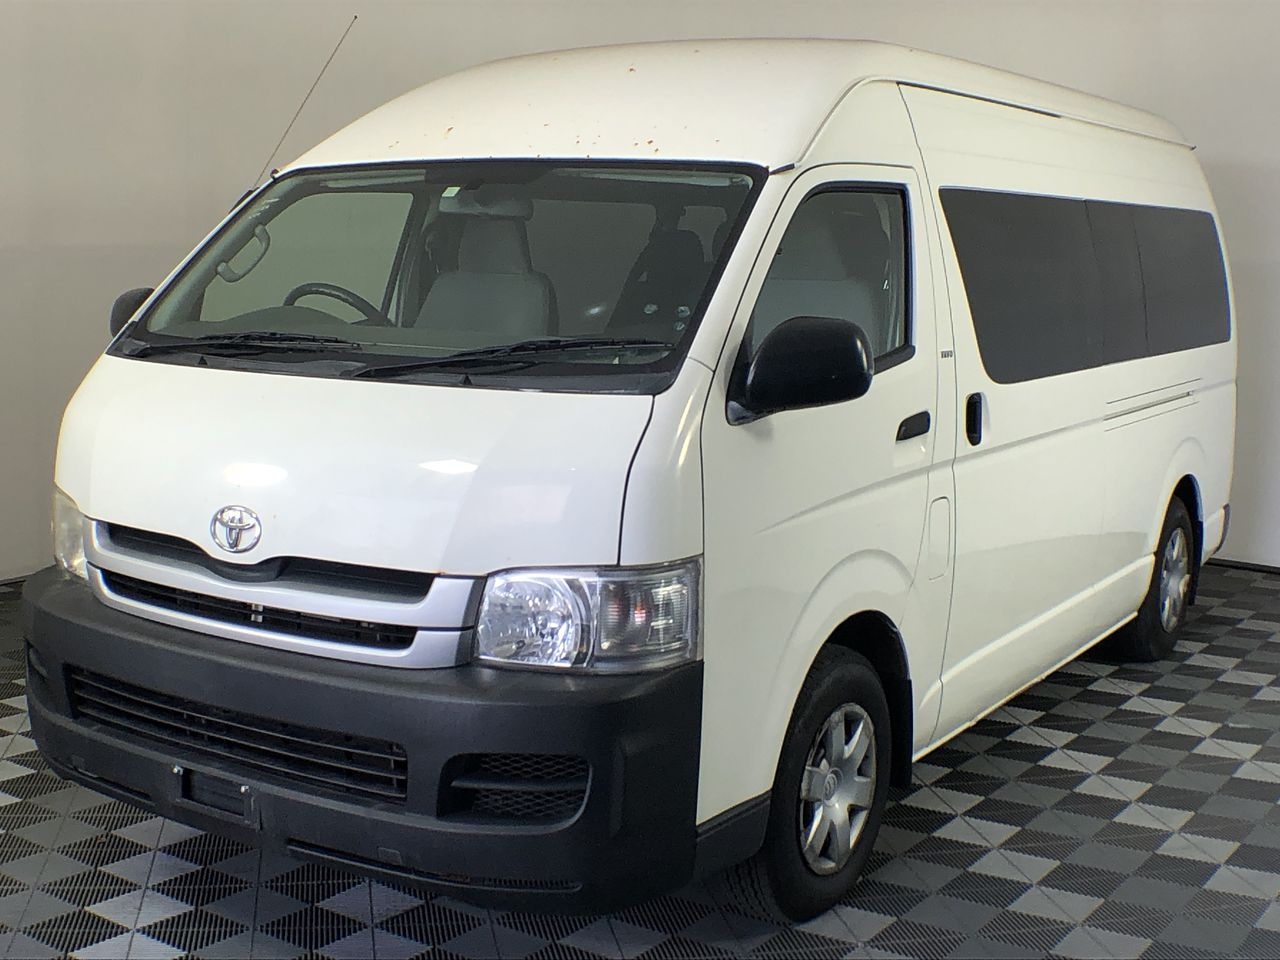 2008 Toyota Hiace Commuter TRH223R Automatic 14 Seats Bus, 65,754km